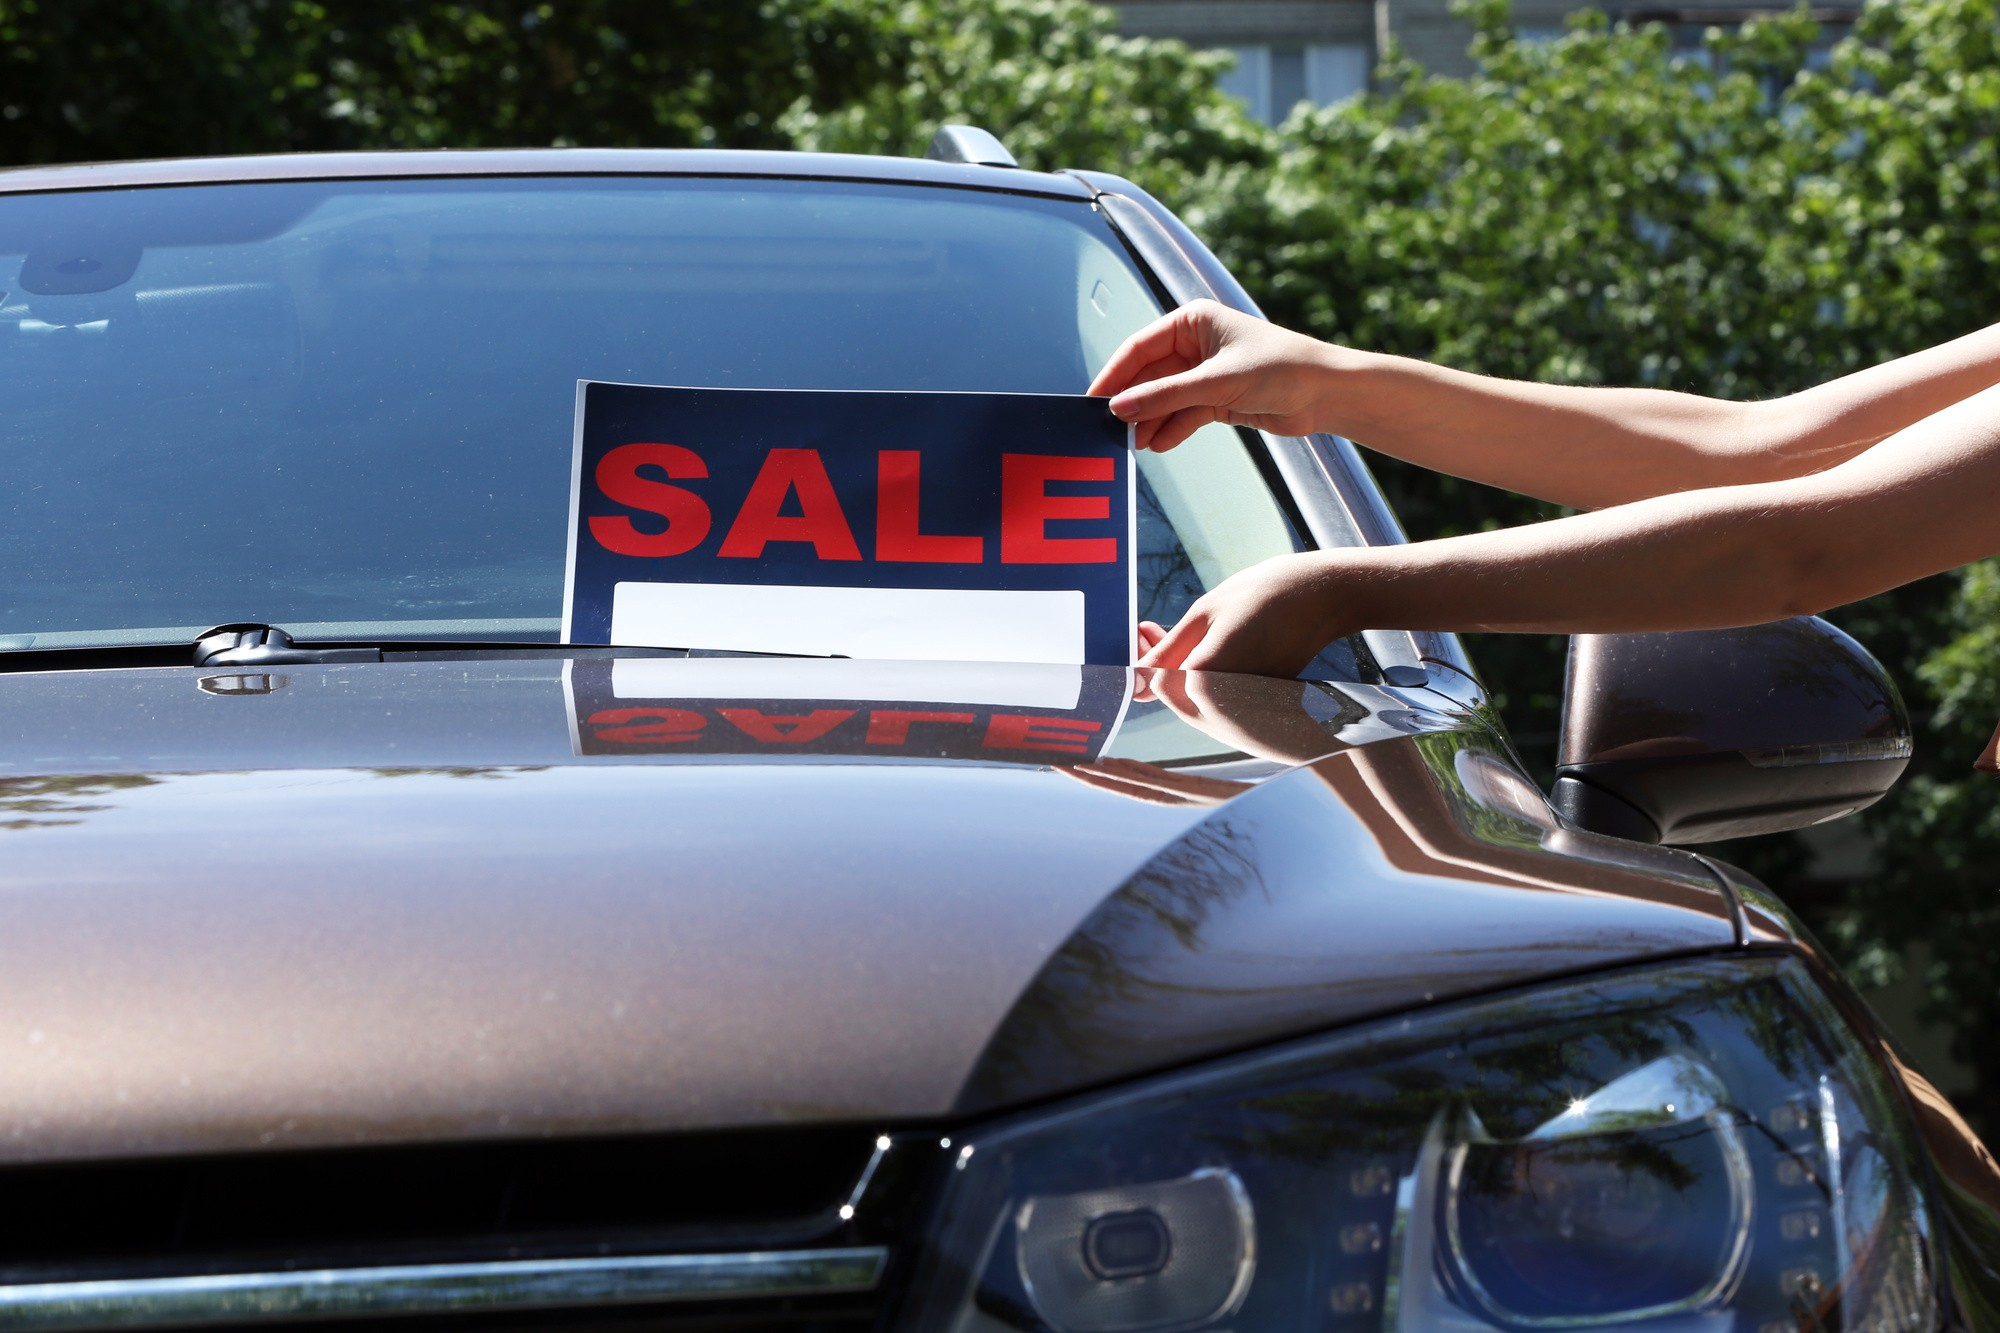 Top 10 Tips For Selling Your Car and Getting Top Dollar